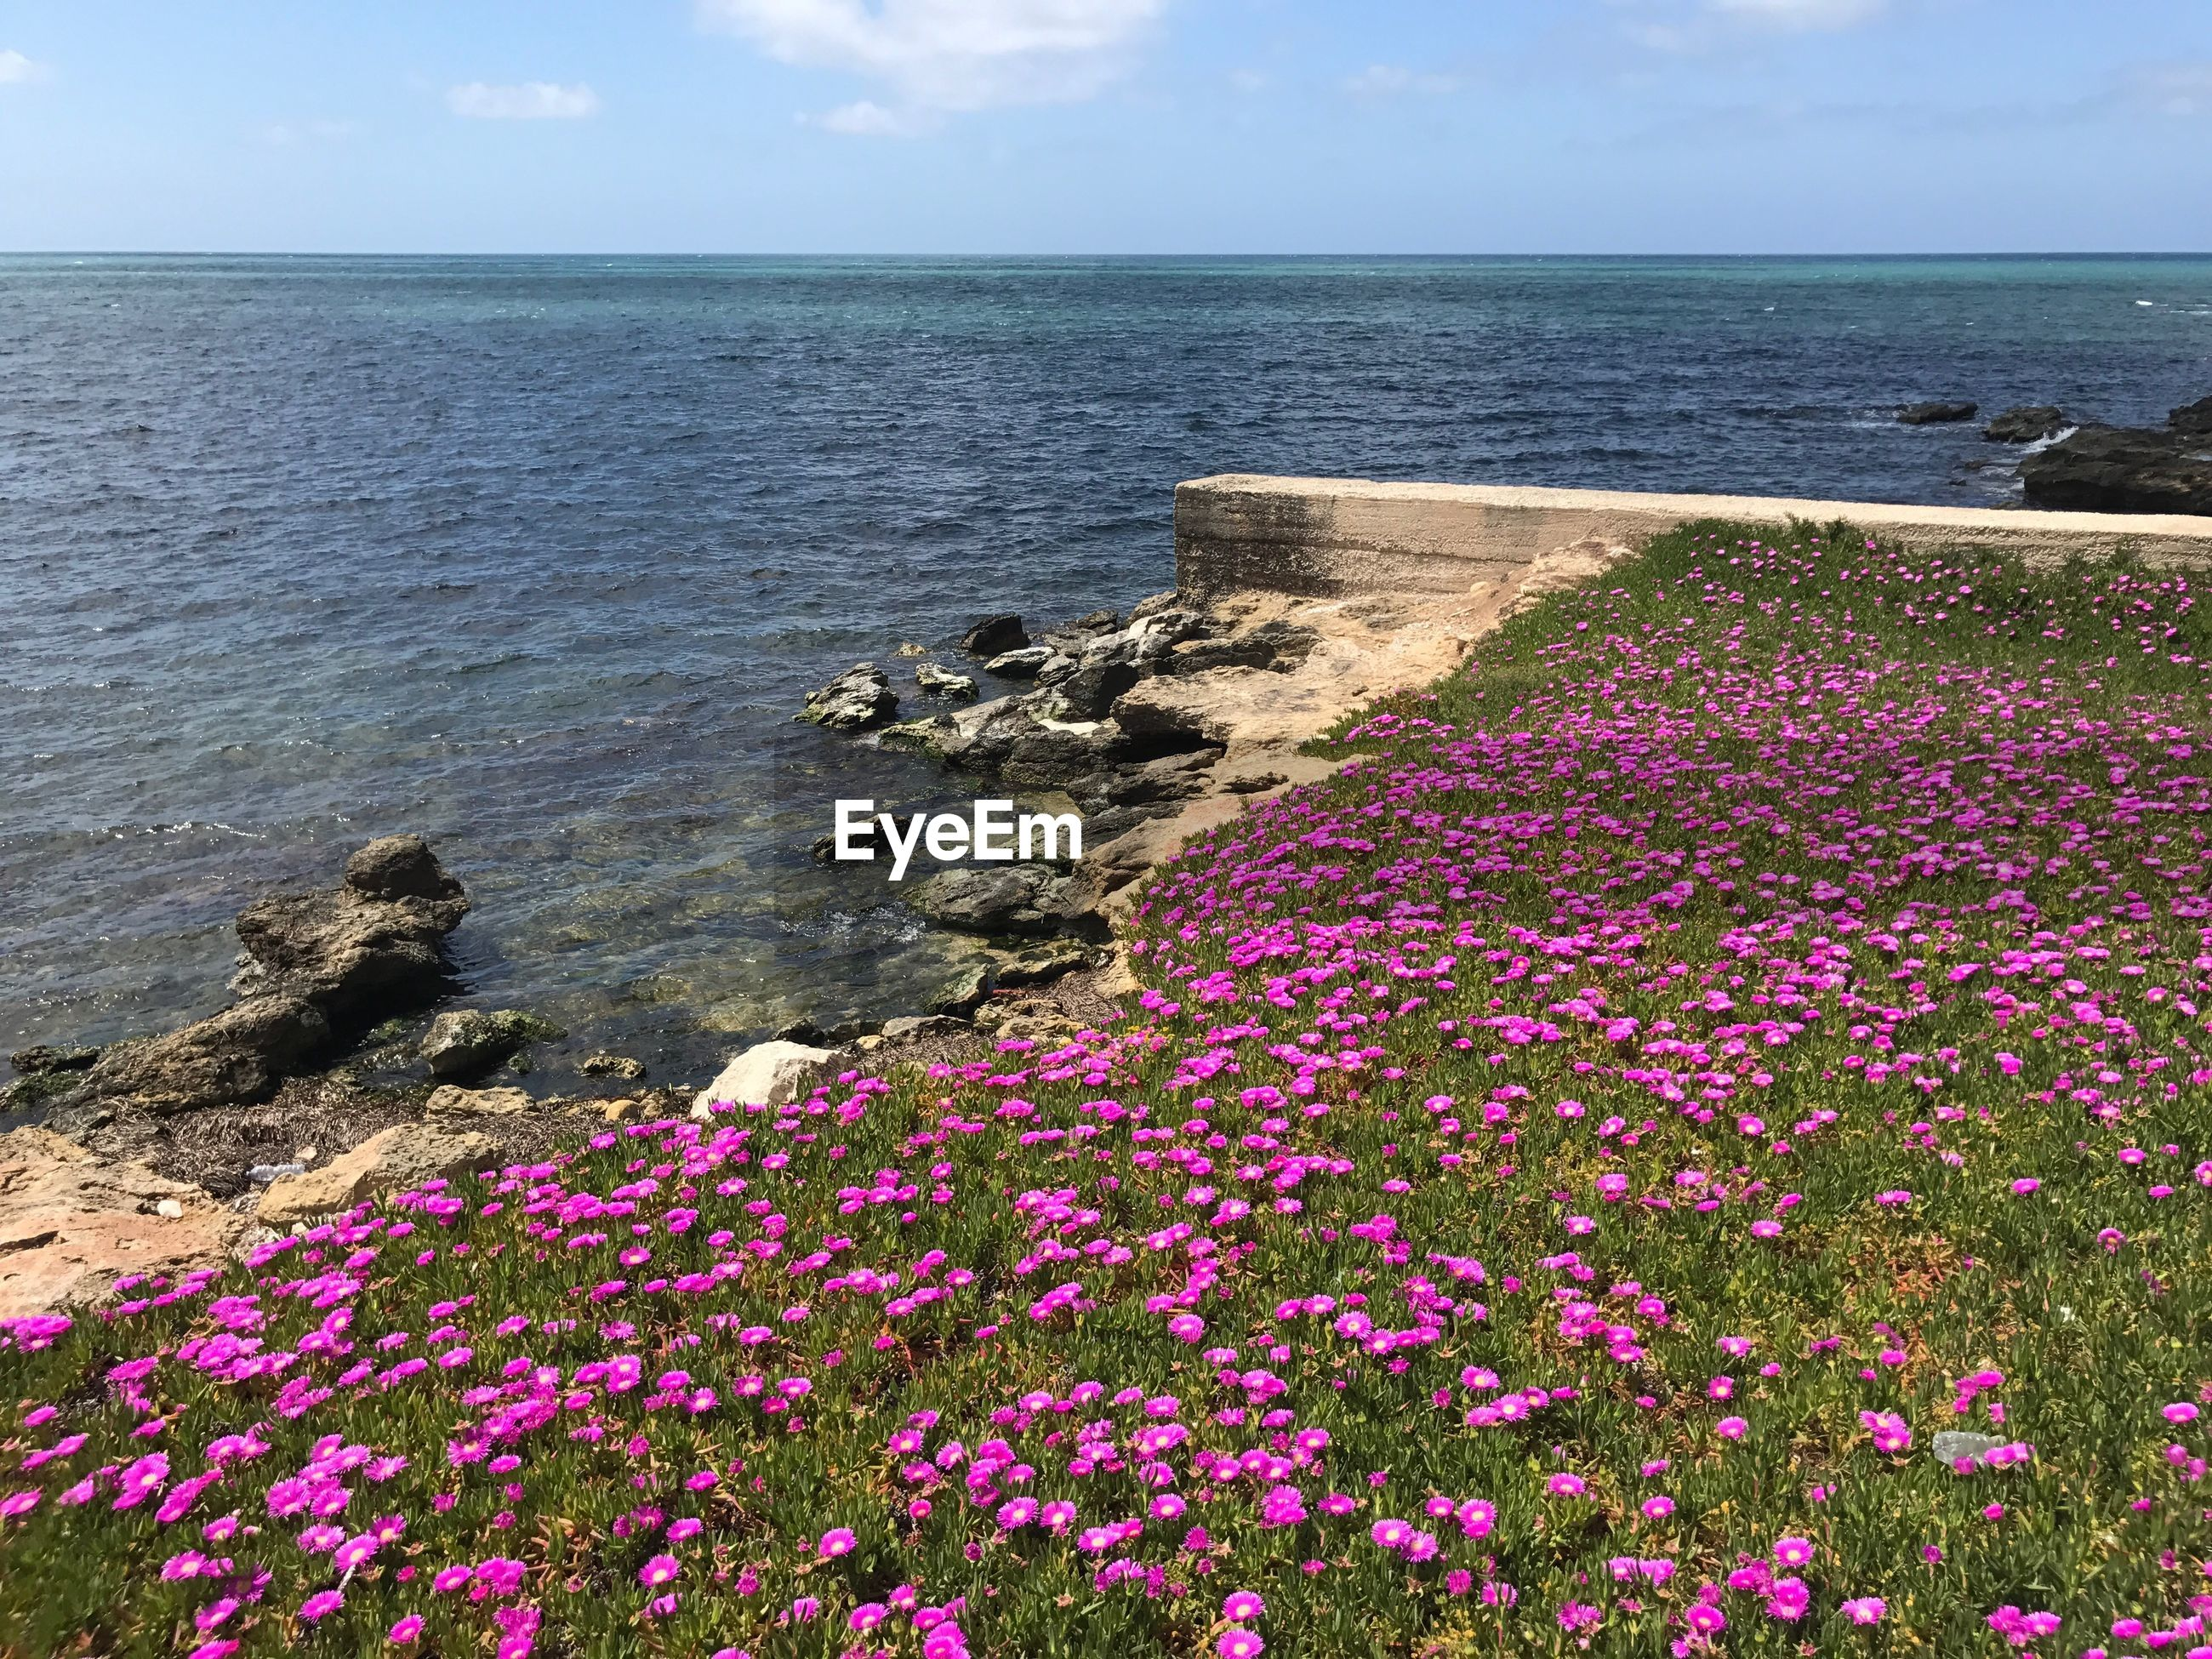 VIEW OF FLOWERS GROWING ON BEACH